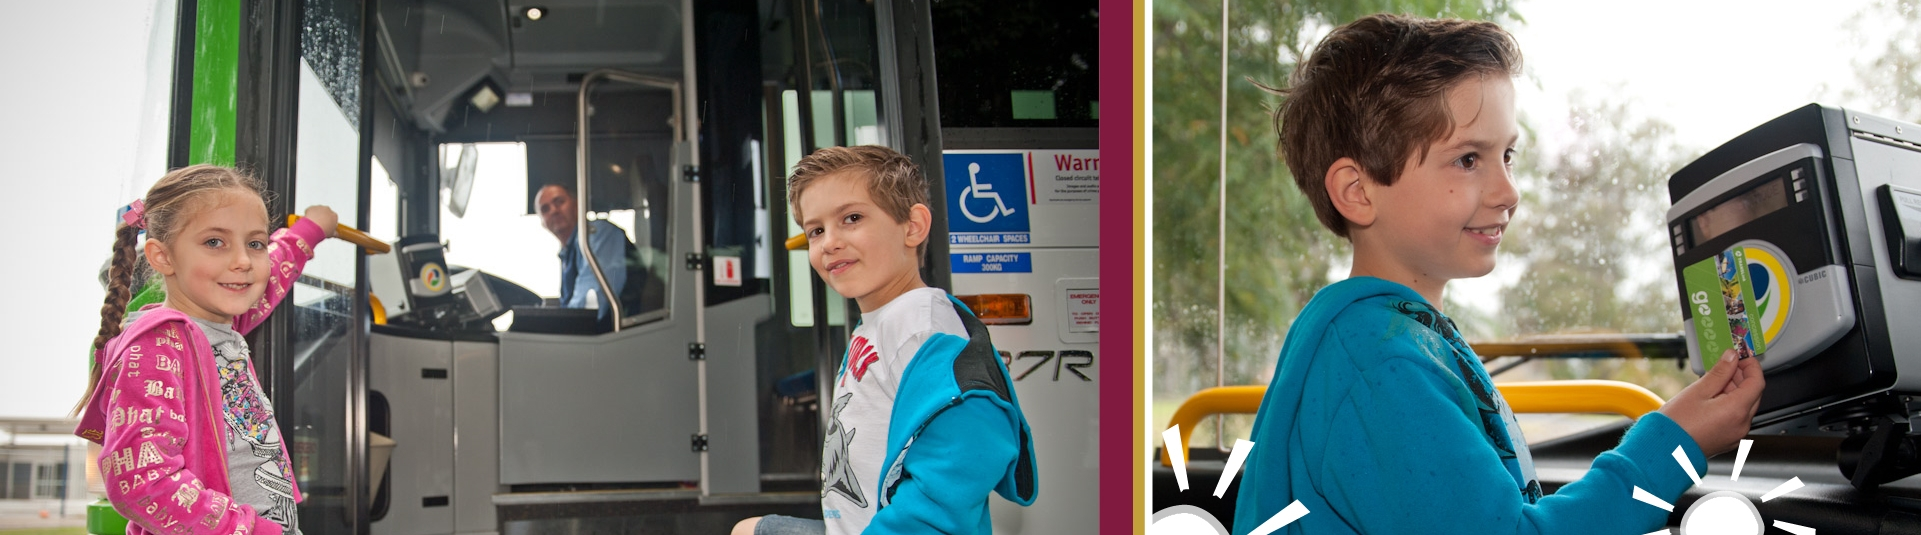 School — Bus Queensland - Connecting Our Community